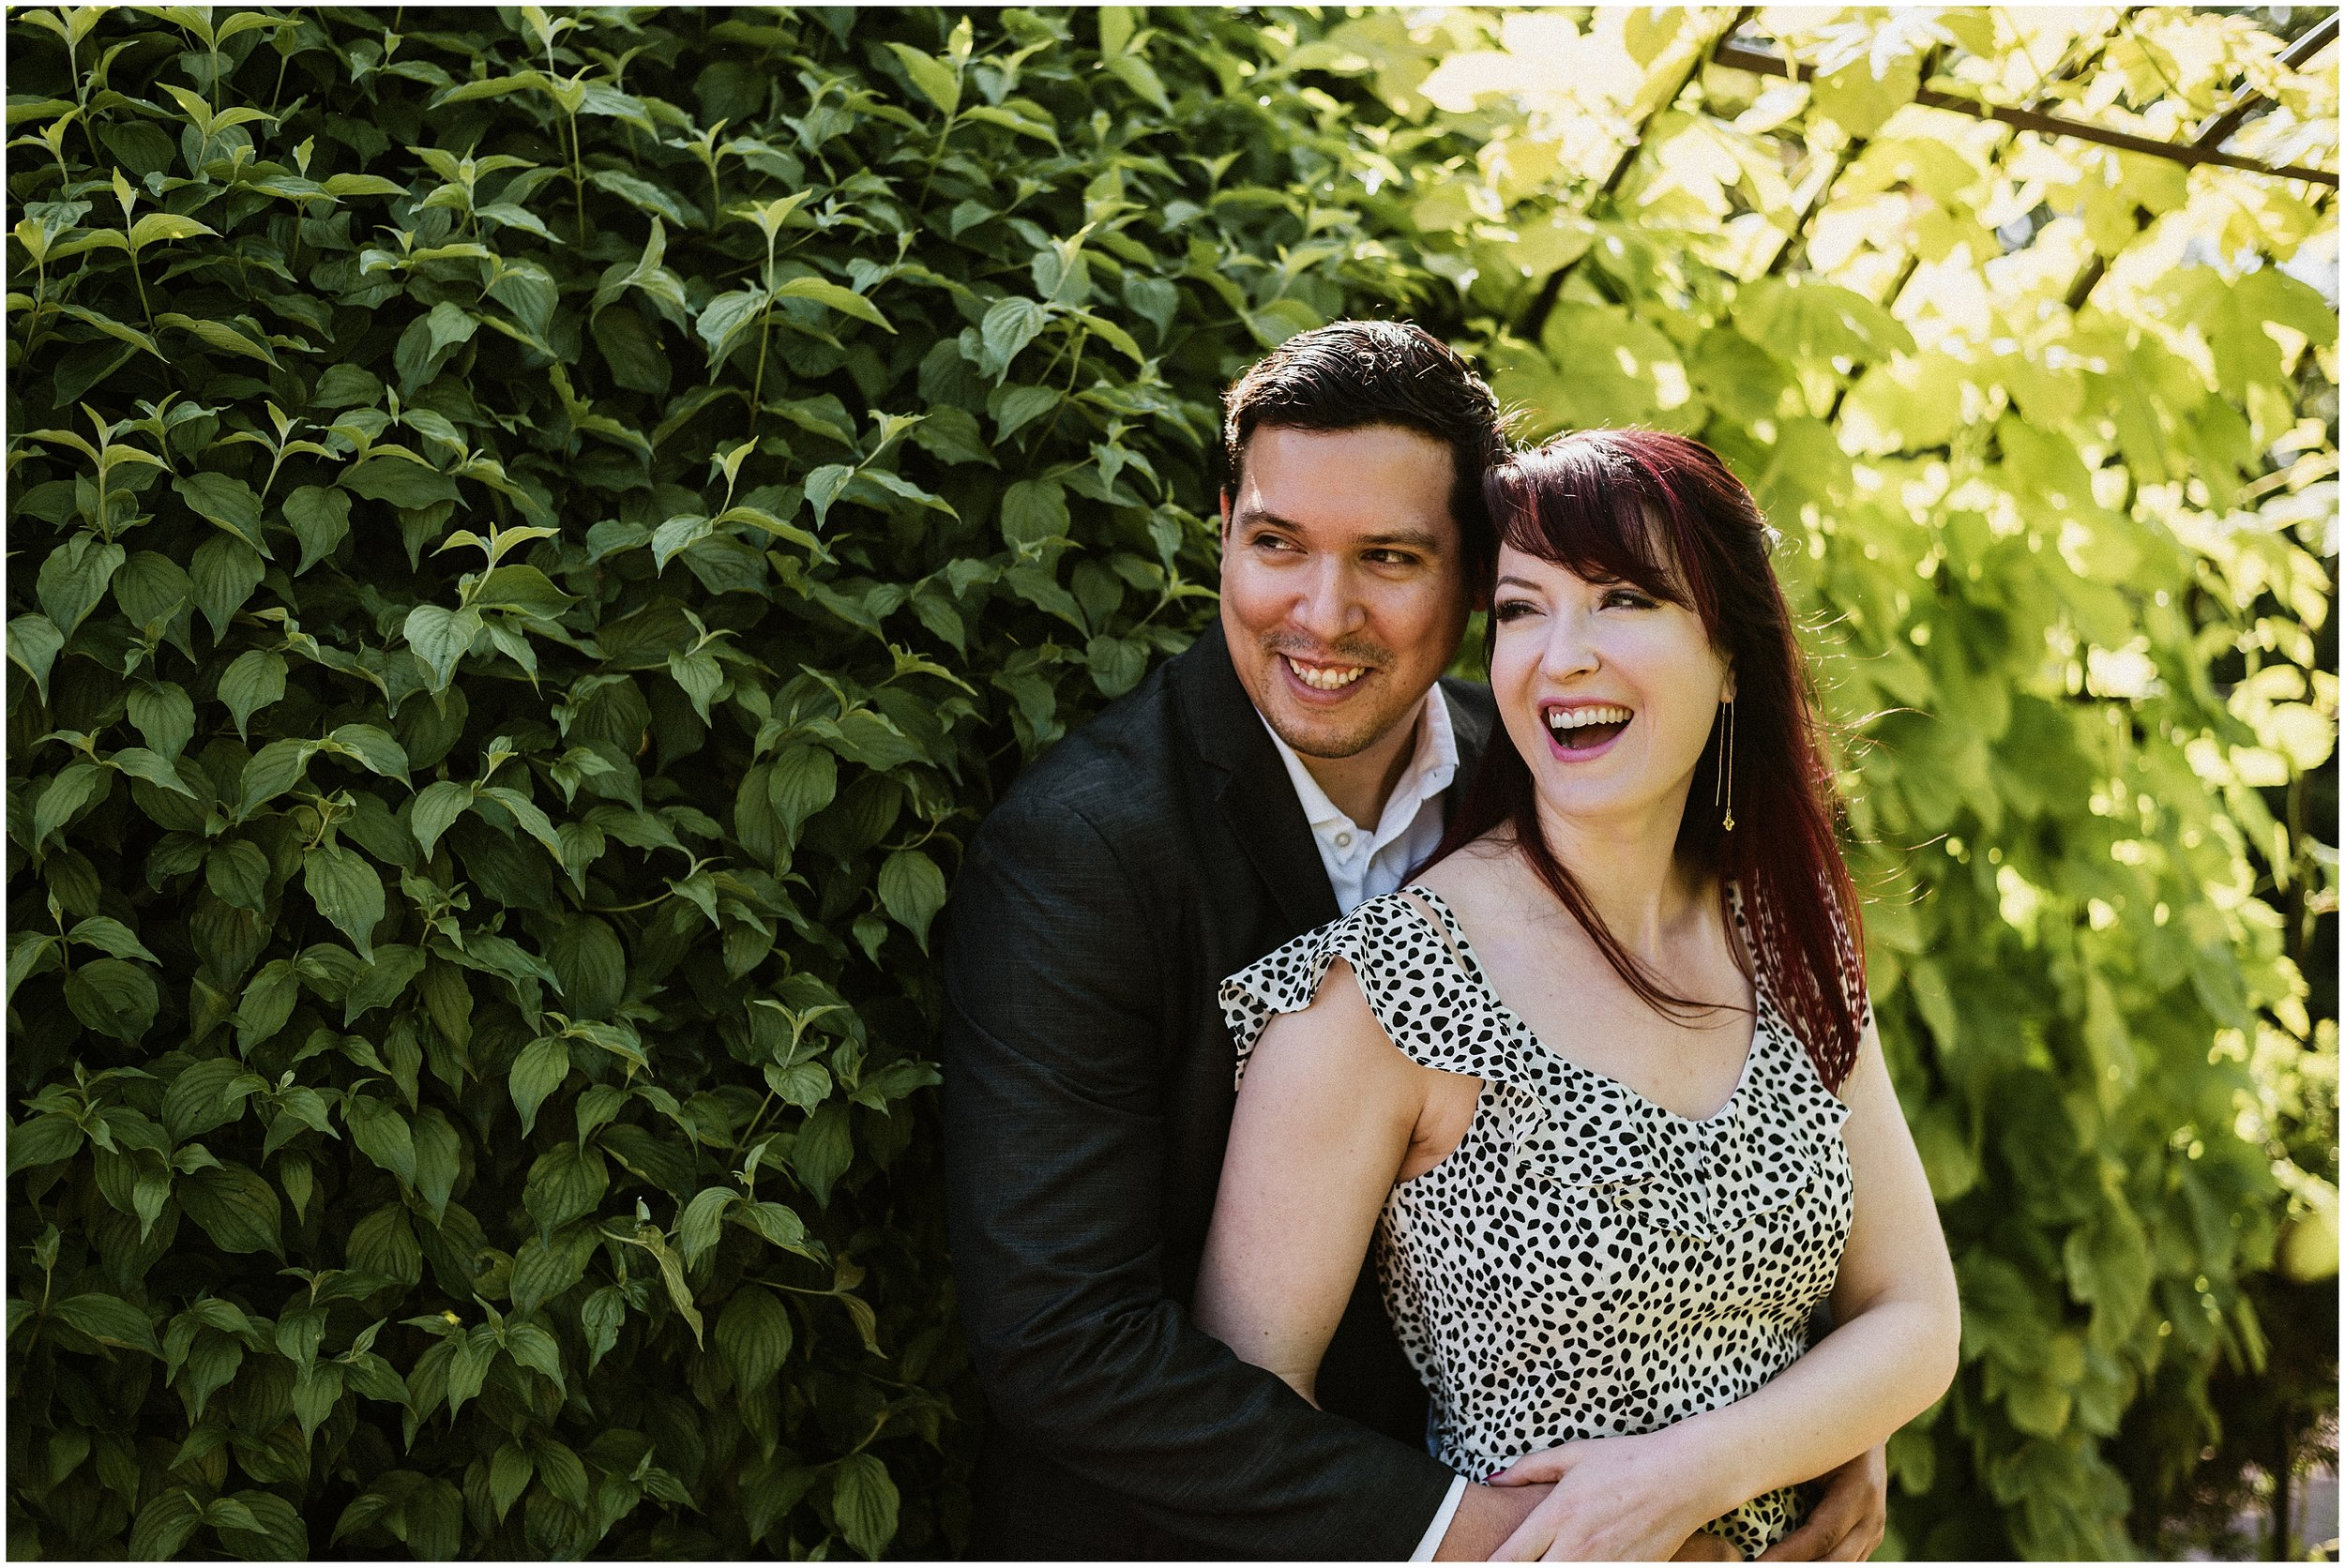 Candace Sims Photography | Sarah and Marcel | Chicago Botanic Garden | Chicago, IL